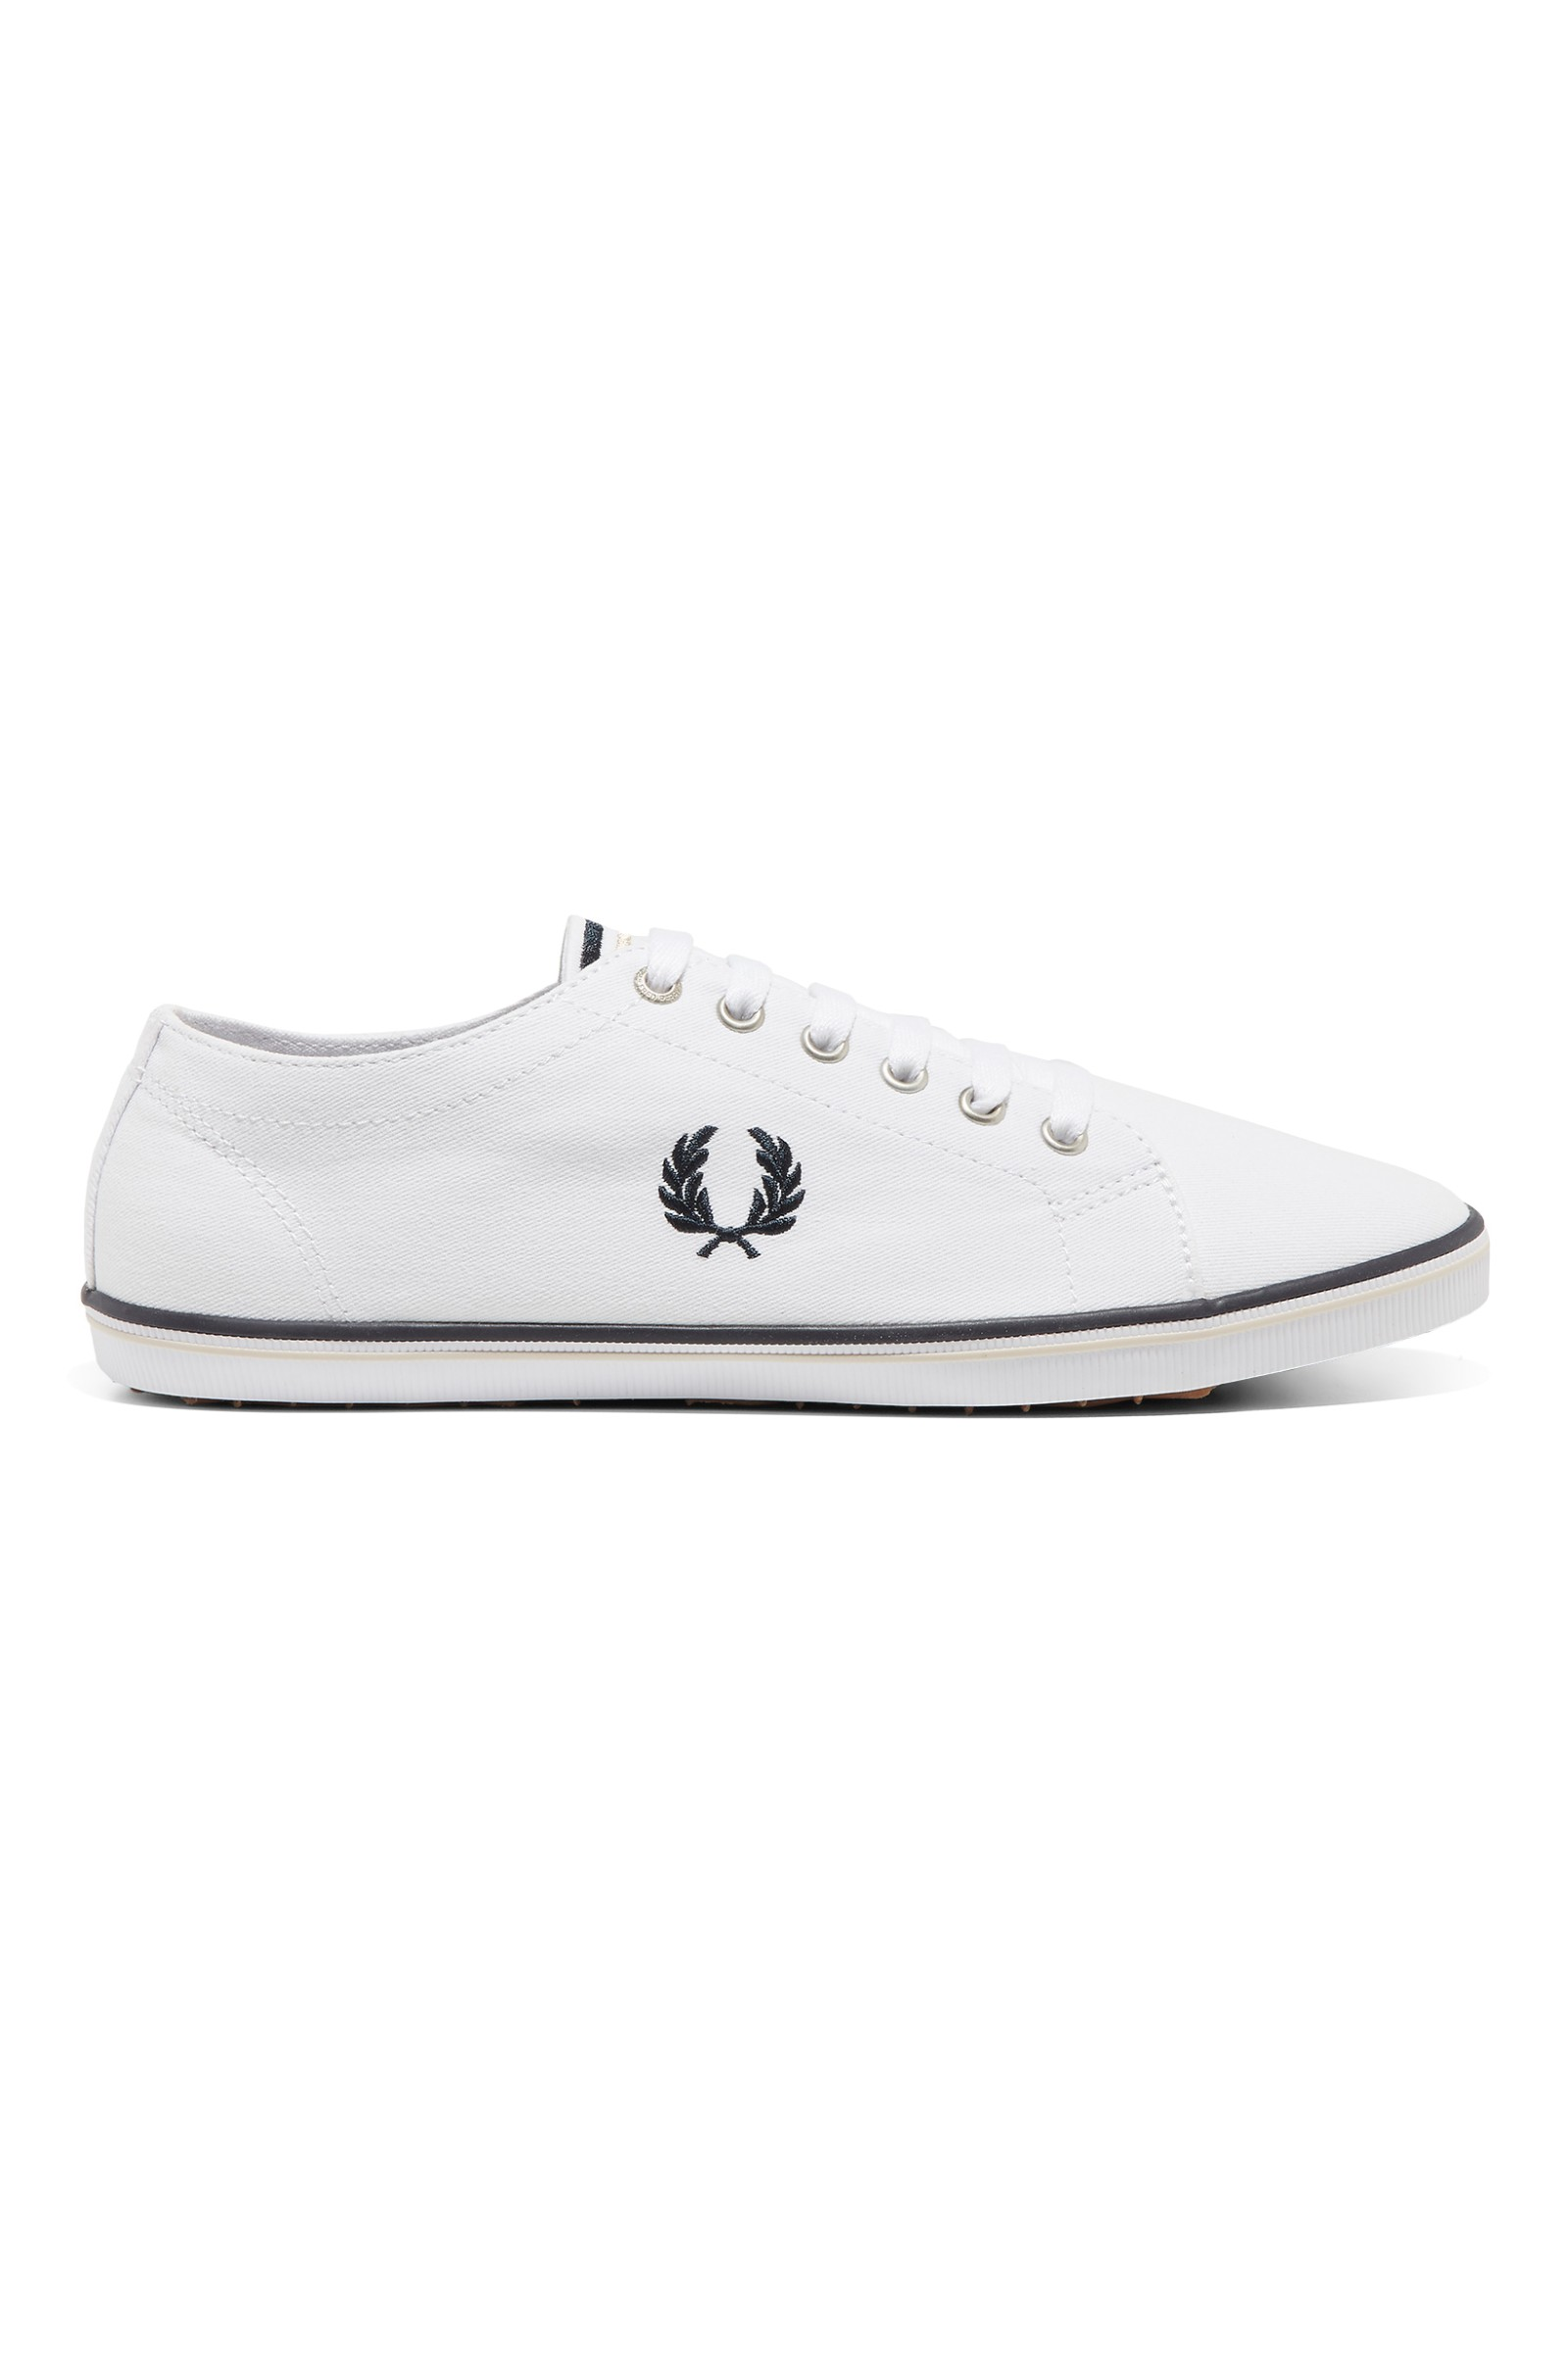 Kingston Twill Plimsolls In White - 370 Fred Perry MV5BhDS